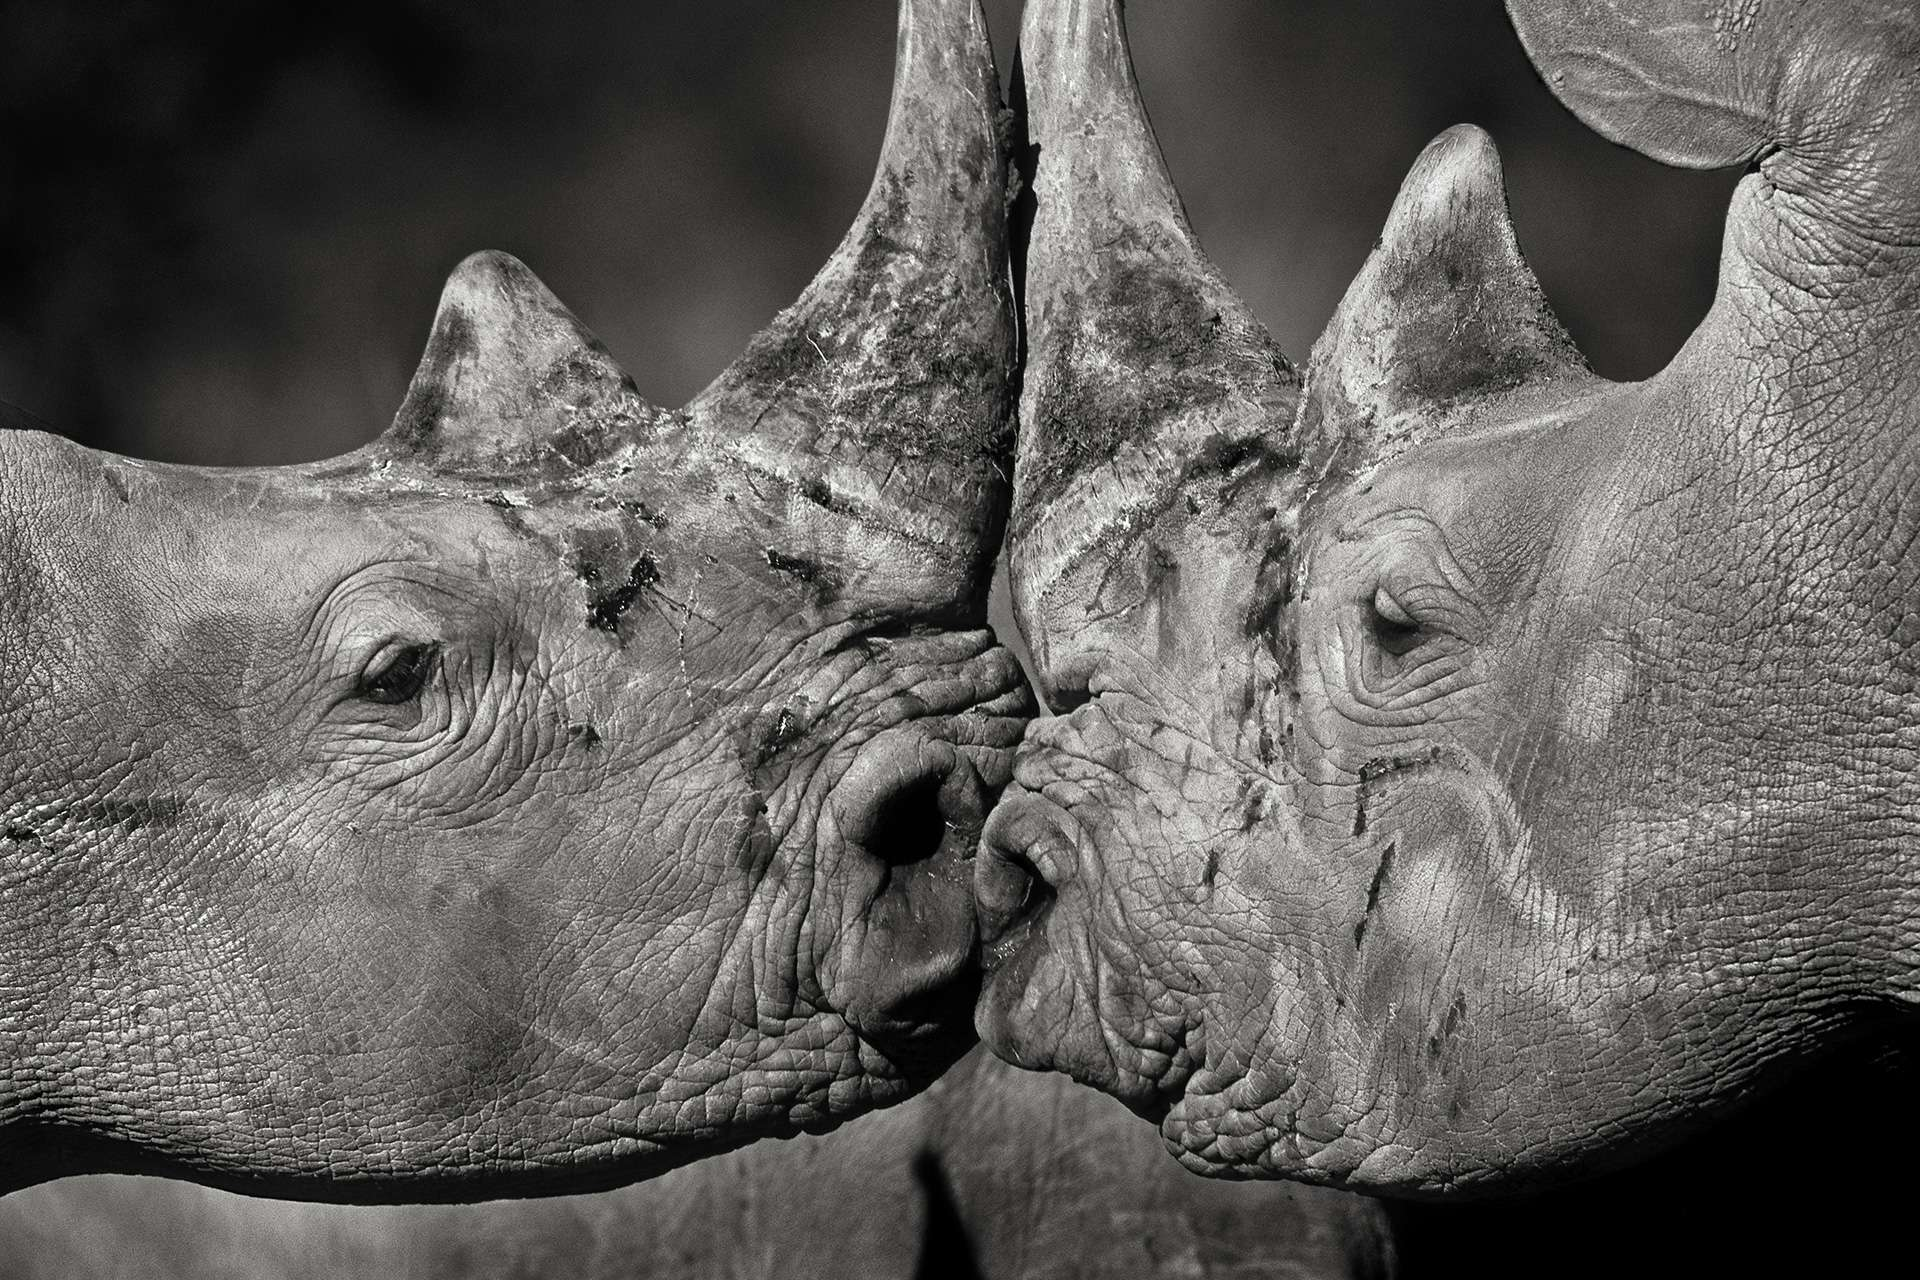 Gilles Martin's photograph : white rhinoceros from South Africa, Struggle for life